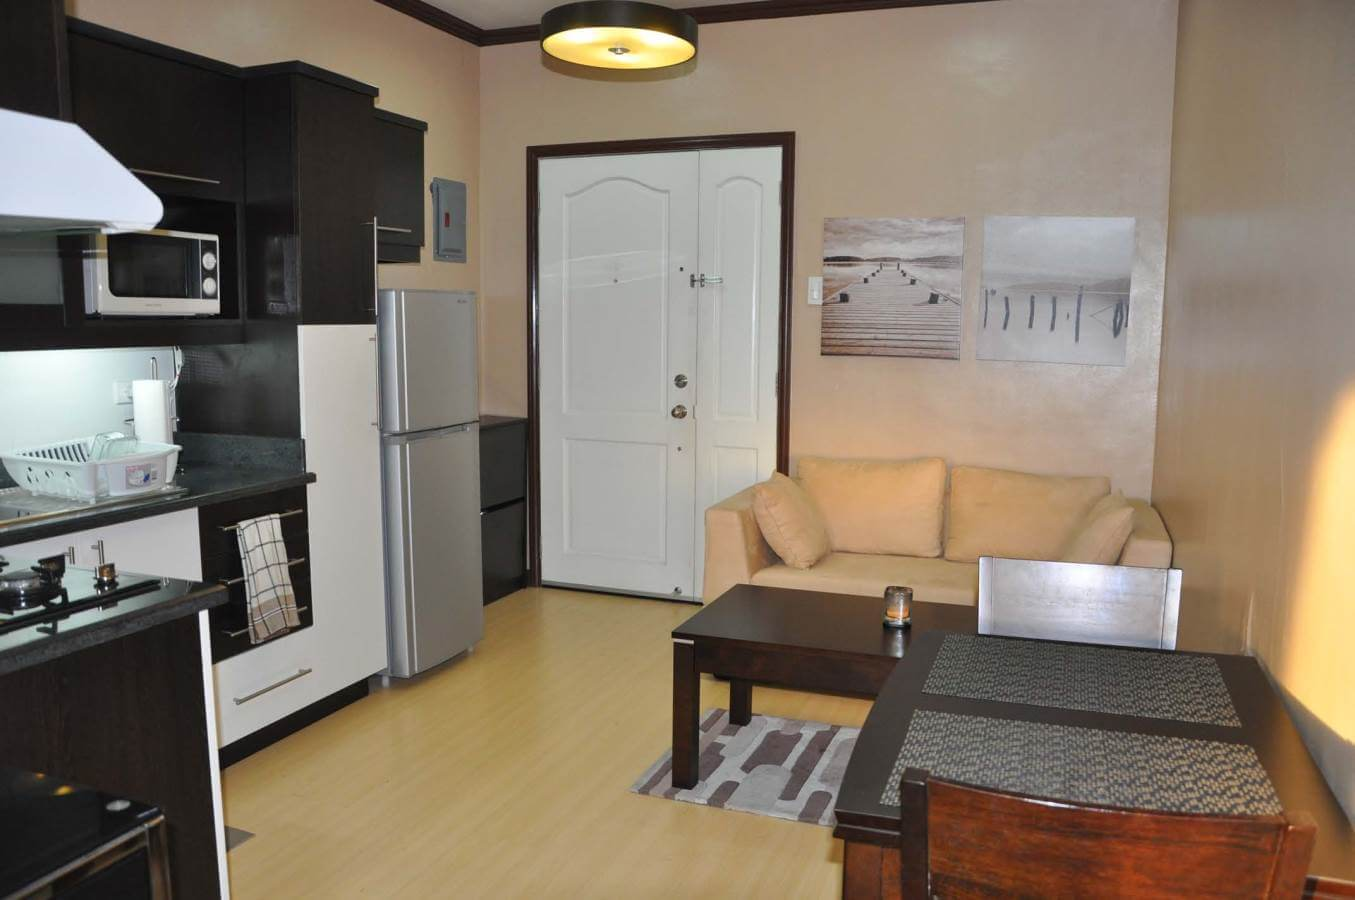 Palaciego uno fully furnished 1 bedroom condo unit for for I bedroom house for sale